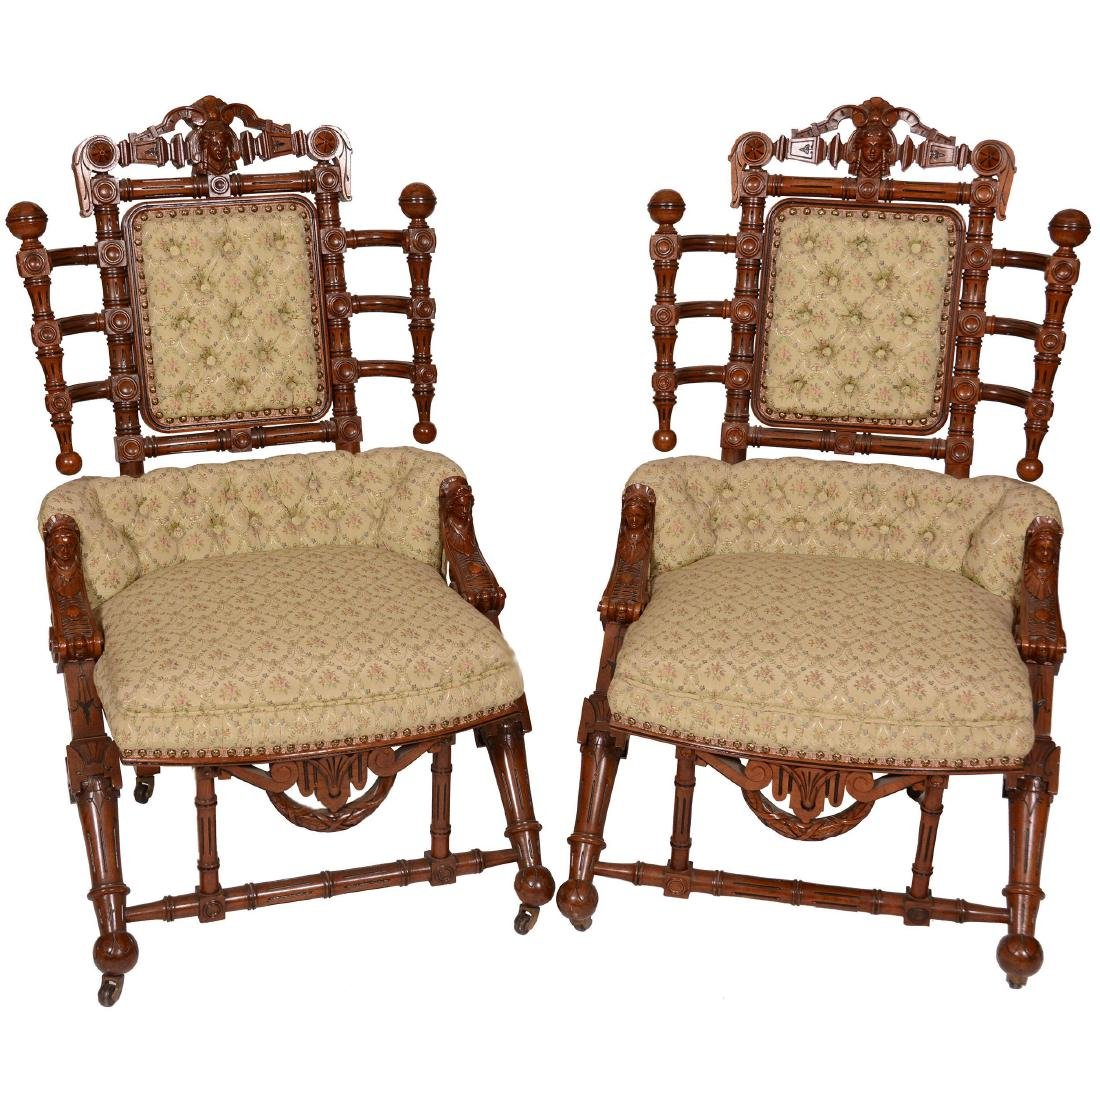 (2)Original Marked Hunzinger Renaissance Revival Chairs